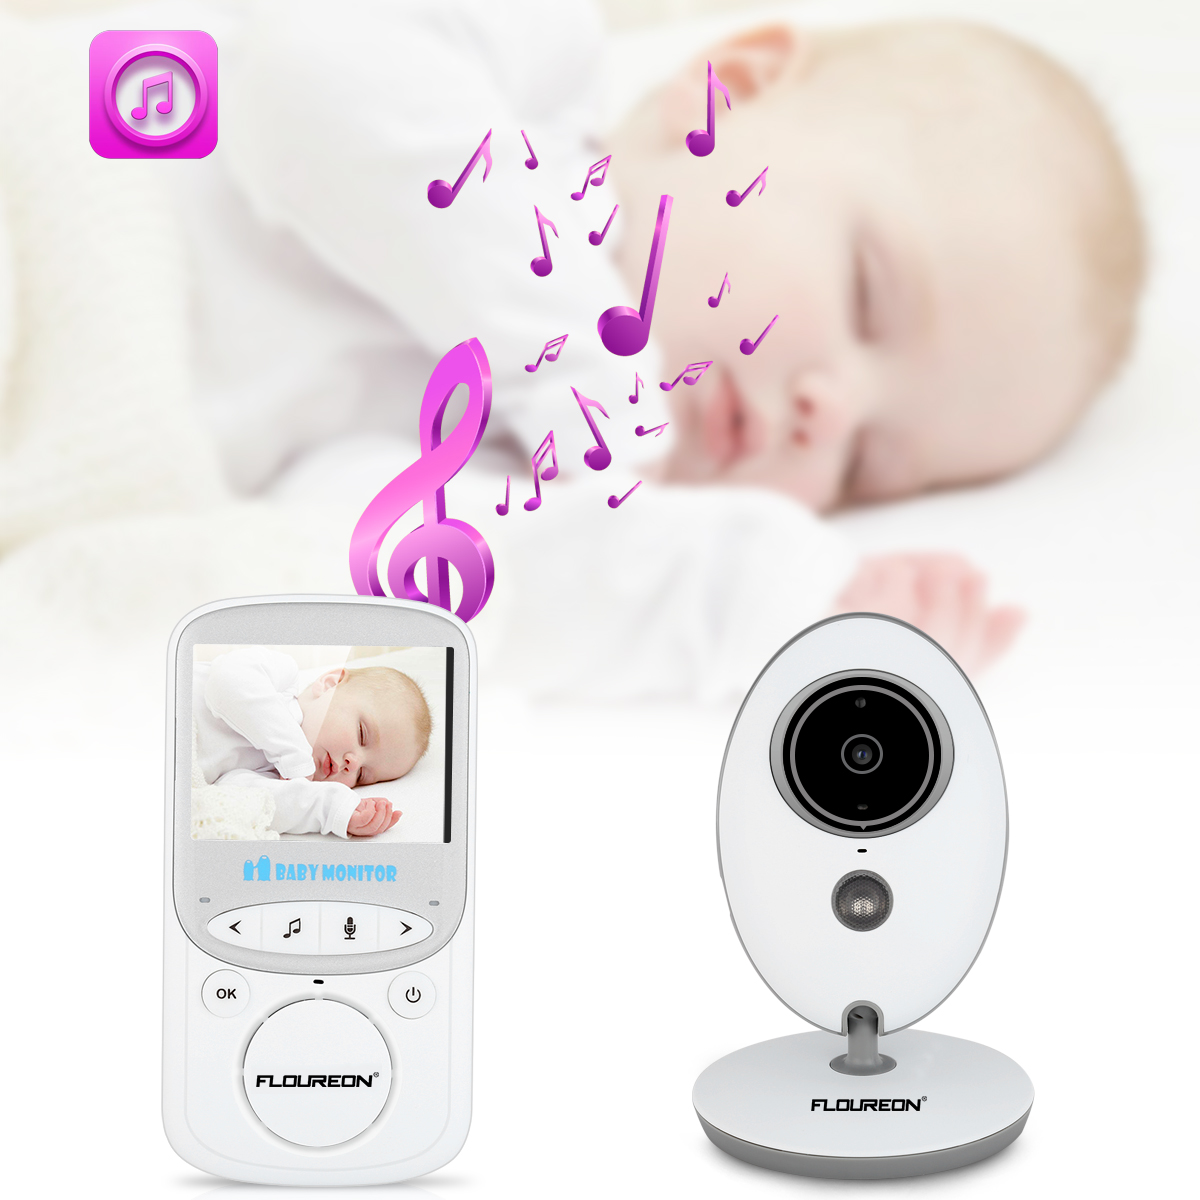 Wireless Video Baby Monitor with Digital Camera, Night Vision Temperature Monitoring & 2 Way Talkback System, White